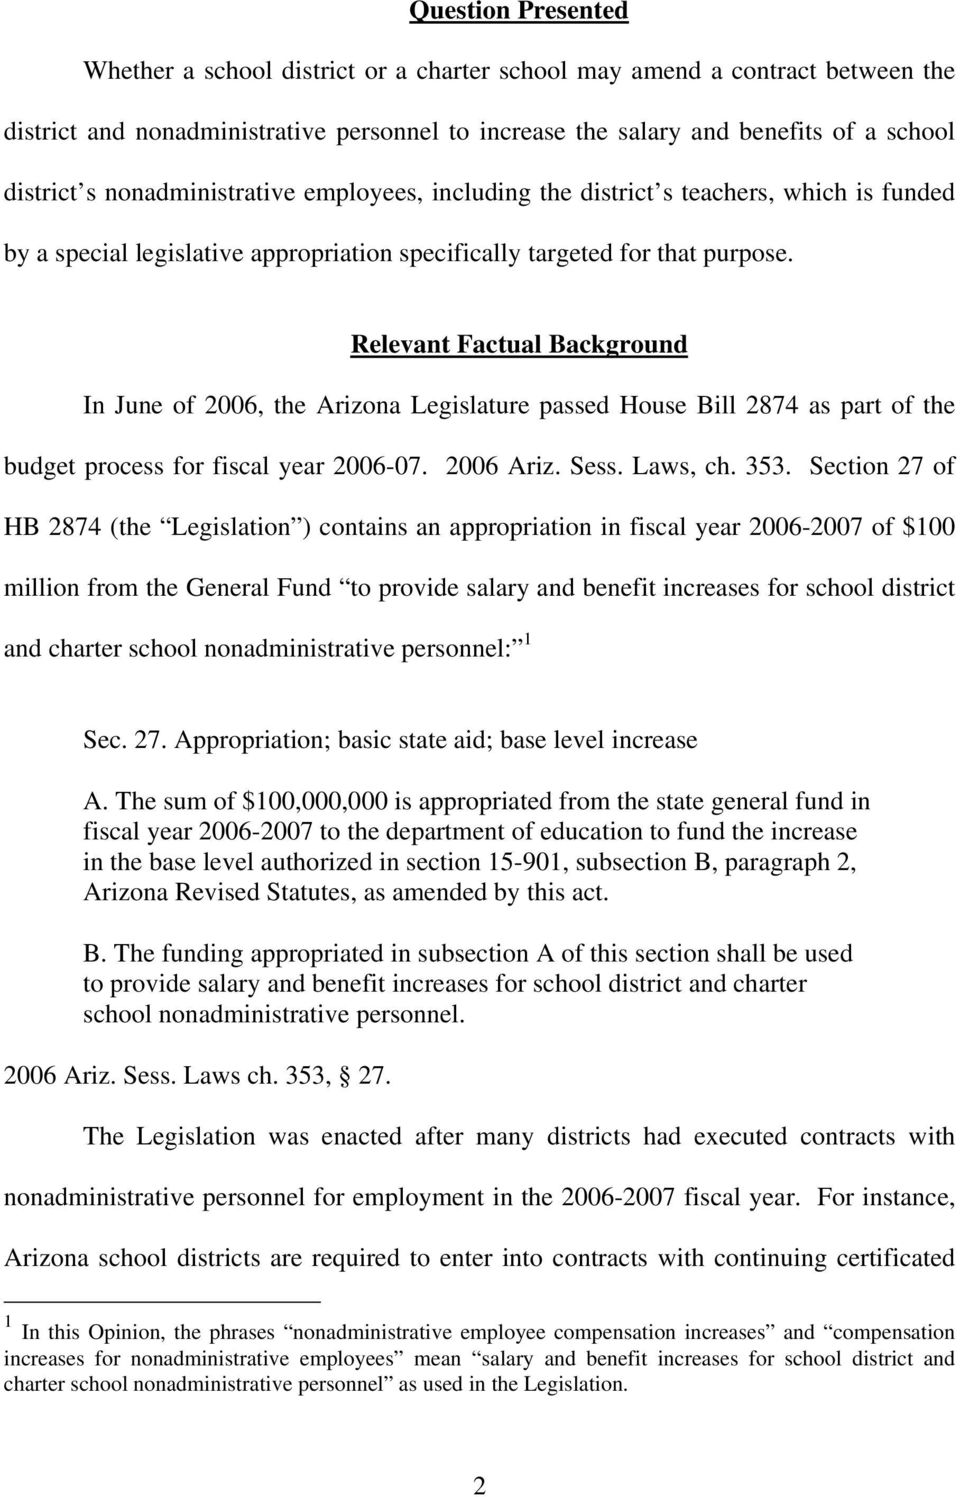 Relevant Factual Background In June of 2006, the Arizona Legislature passed House Bill 2874 as part of the budget process for fiscal year 2006-07. 2006 Ariz. Sess. Laws, ch. 353.